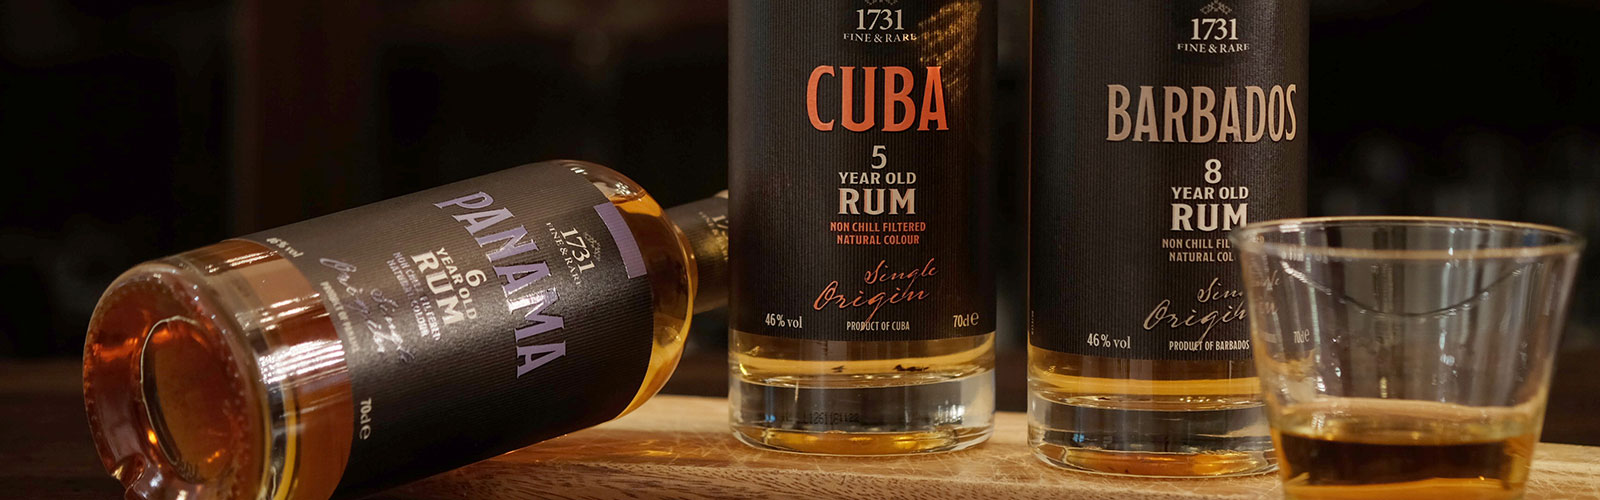 1731 Fine and Rare Rum Collection